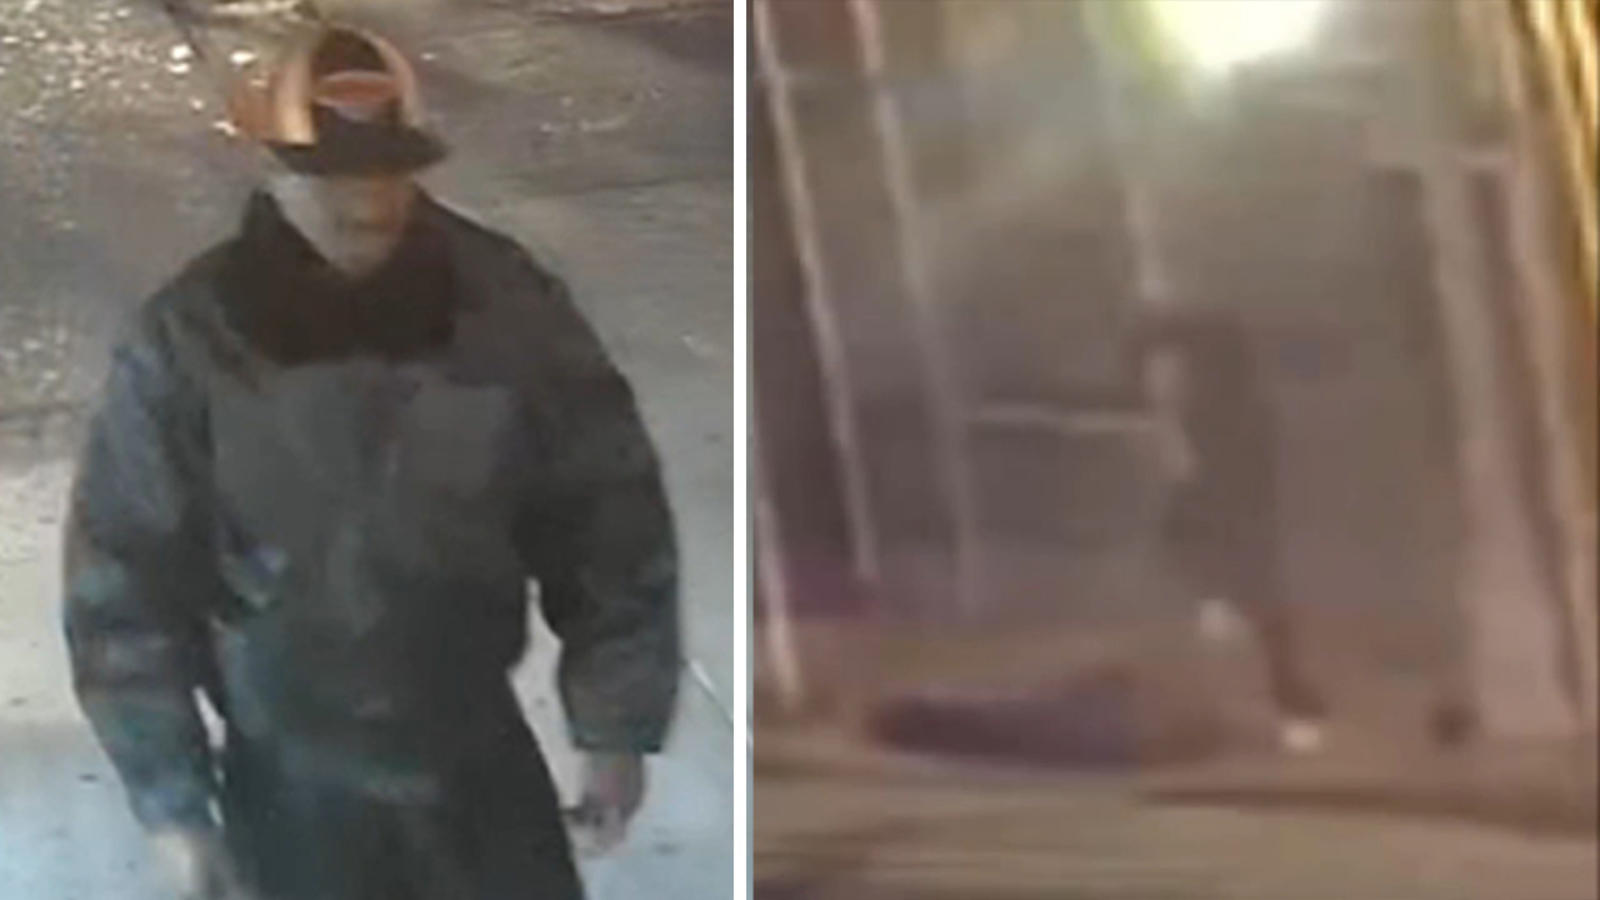 abc7ny.com: 61-year-old Asian American man critically injured in brutal, unprovoked assault in Manhattan